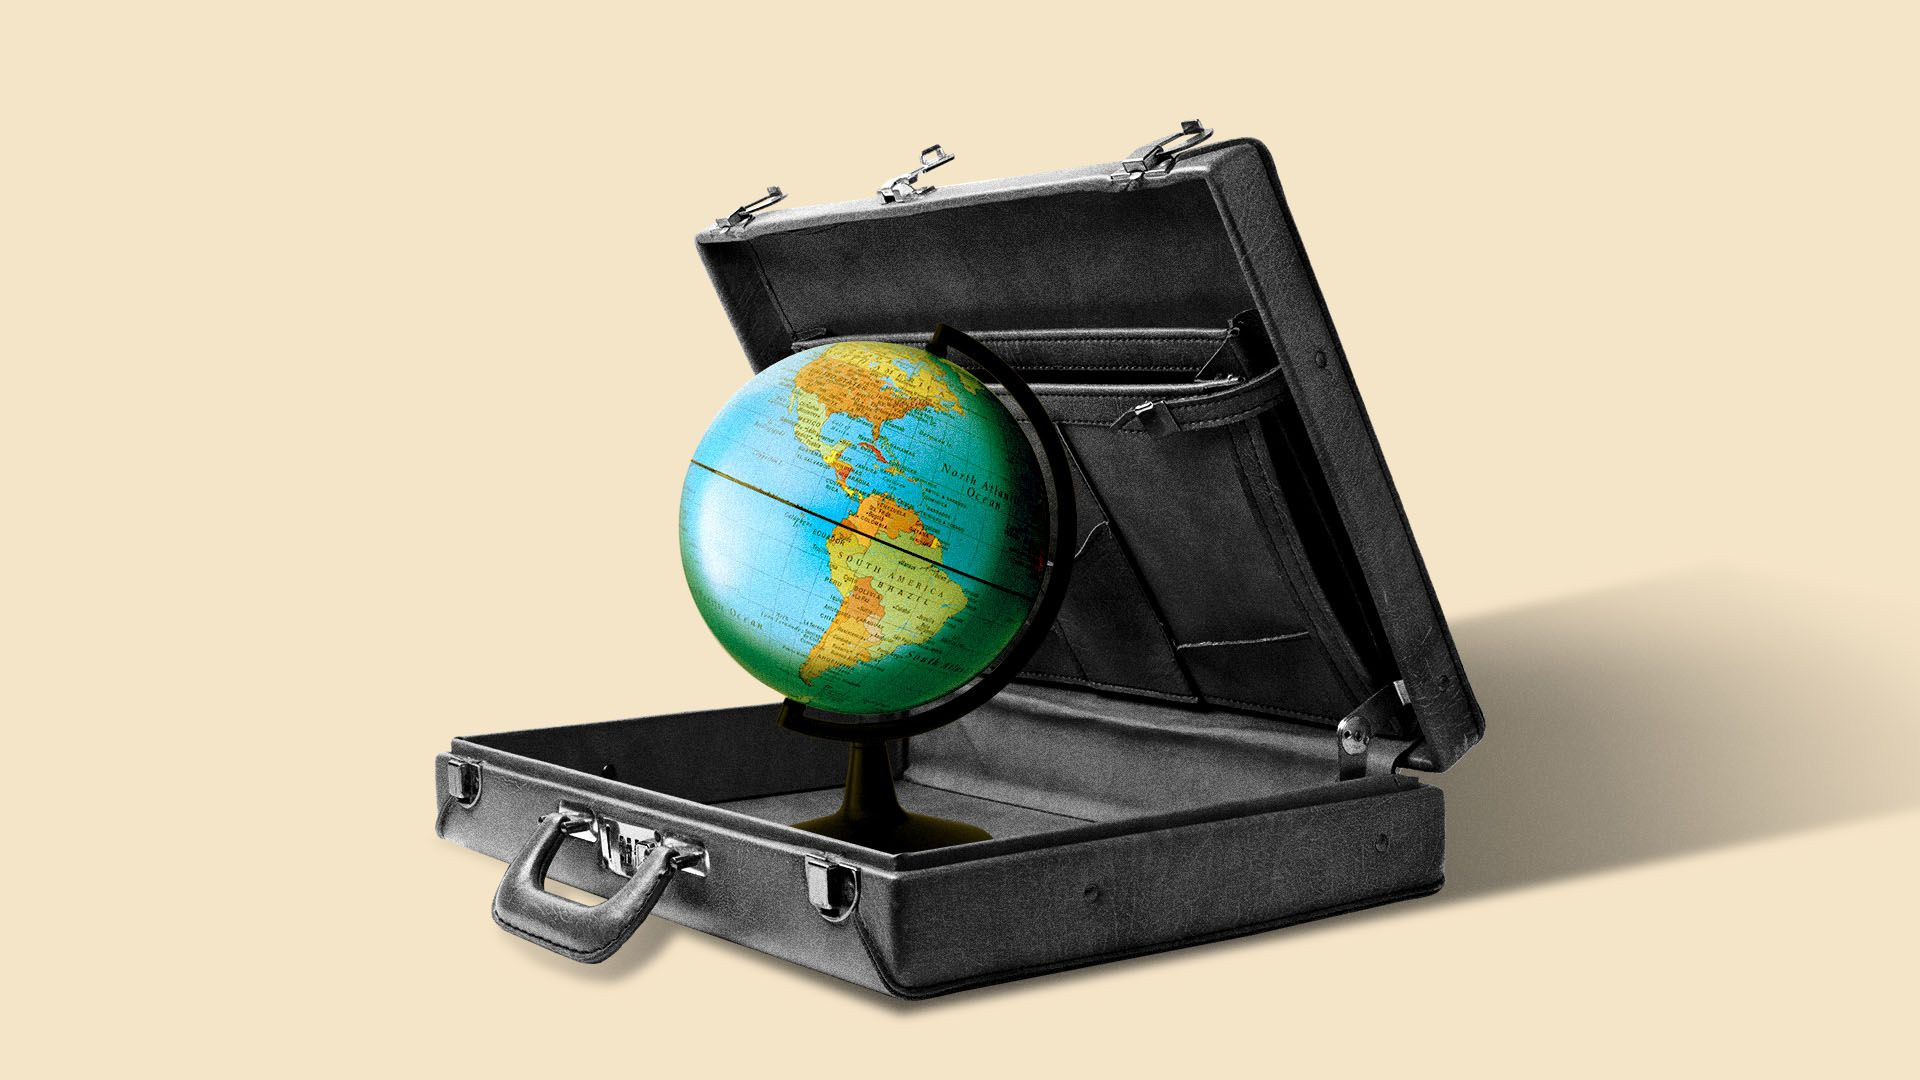 A globe is displayed in a suitcase.